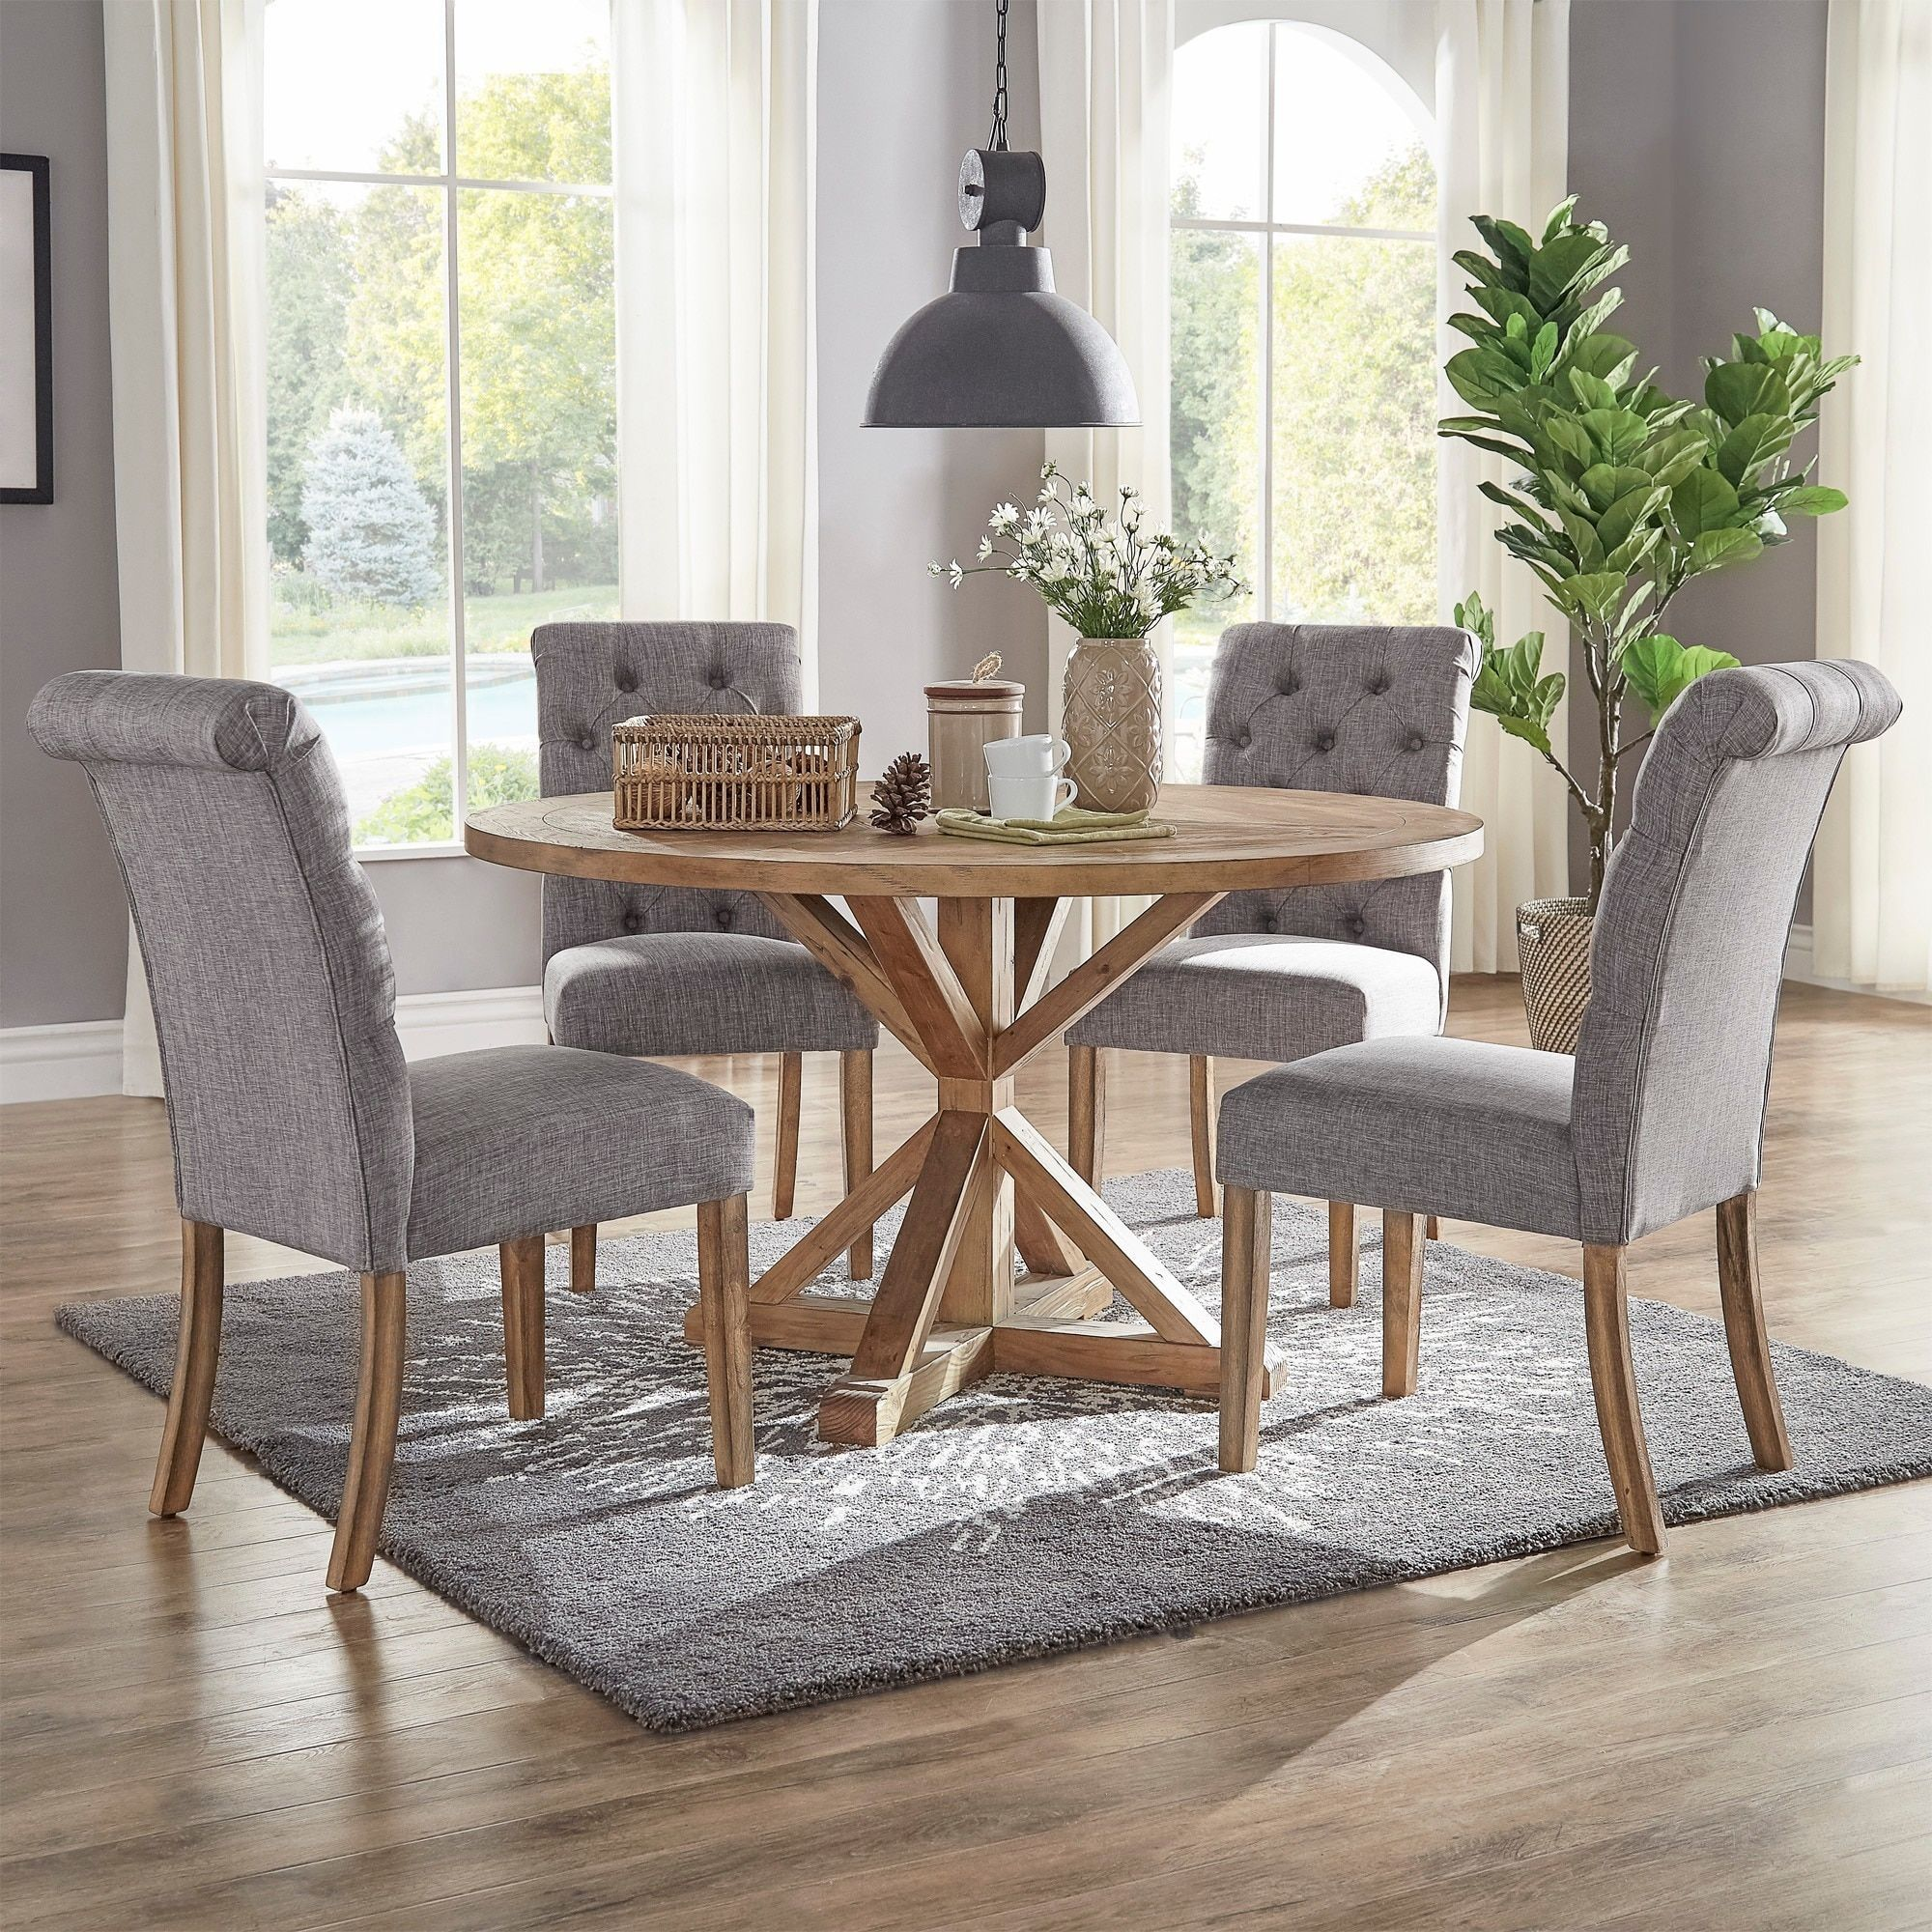 Benchwright rustic x base 48 inch round dining table set by signal benchwright rustic x base 48 inch round dining table set by signal hills geotapseo Choice Image